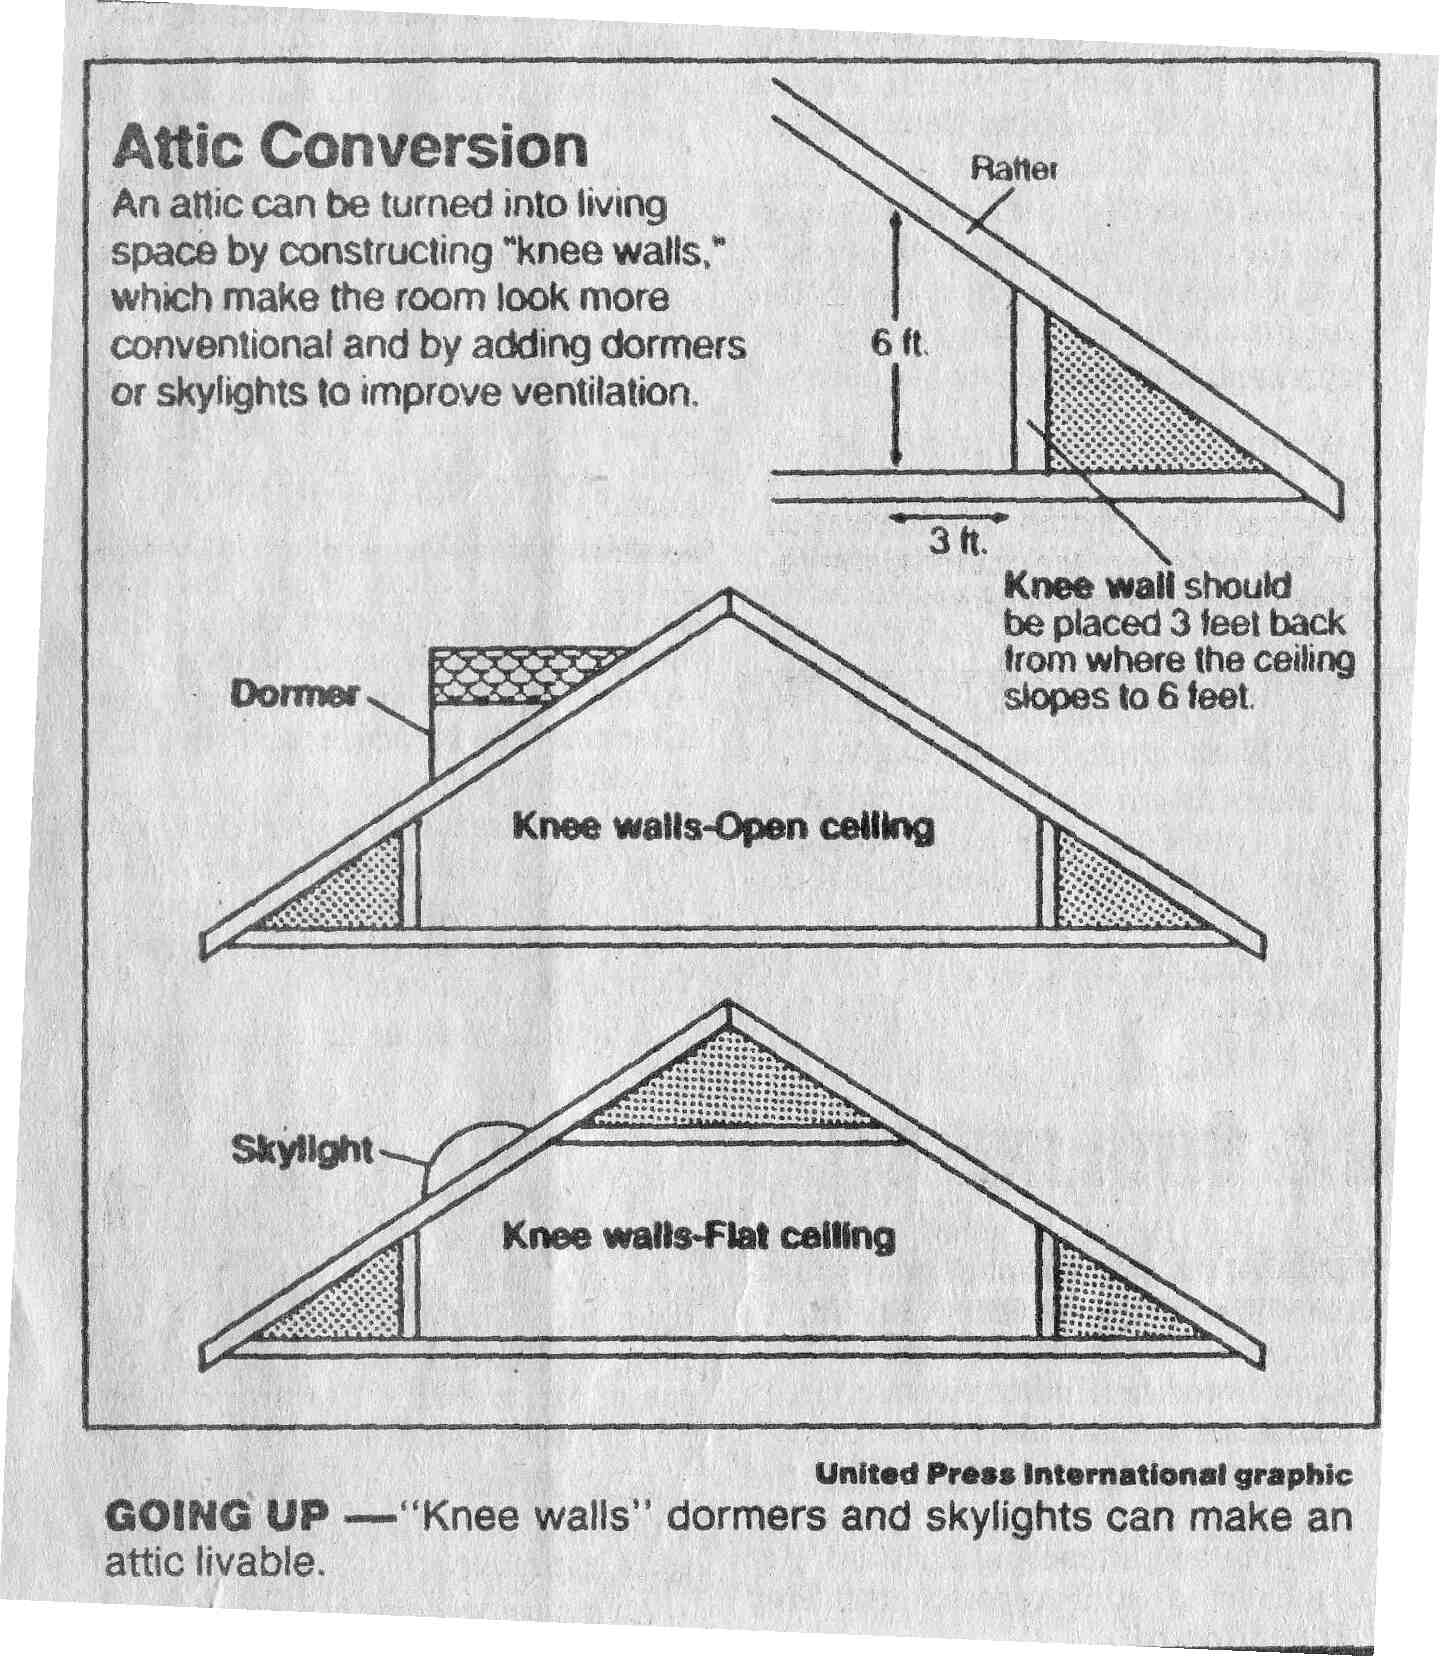 Converting an attic2